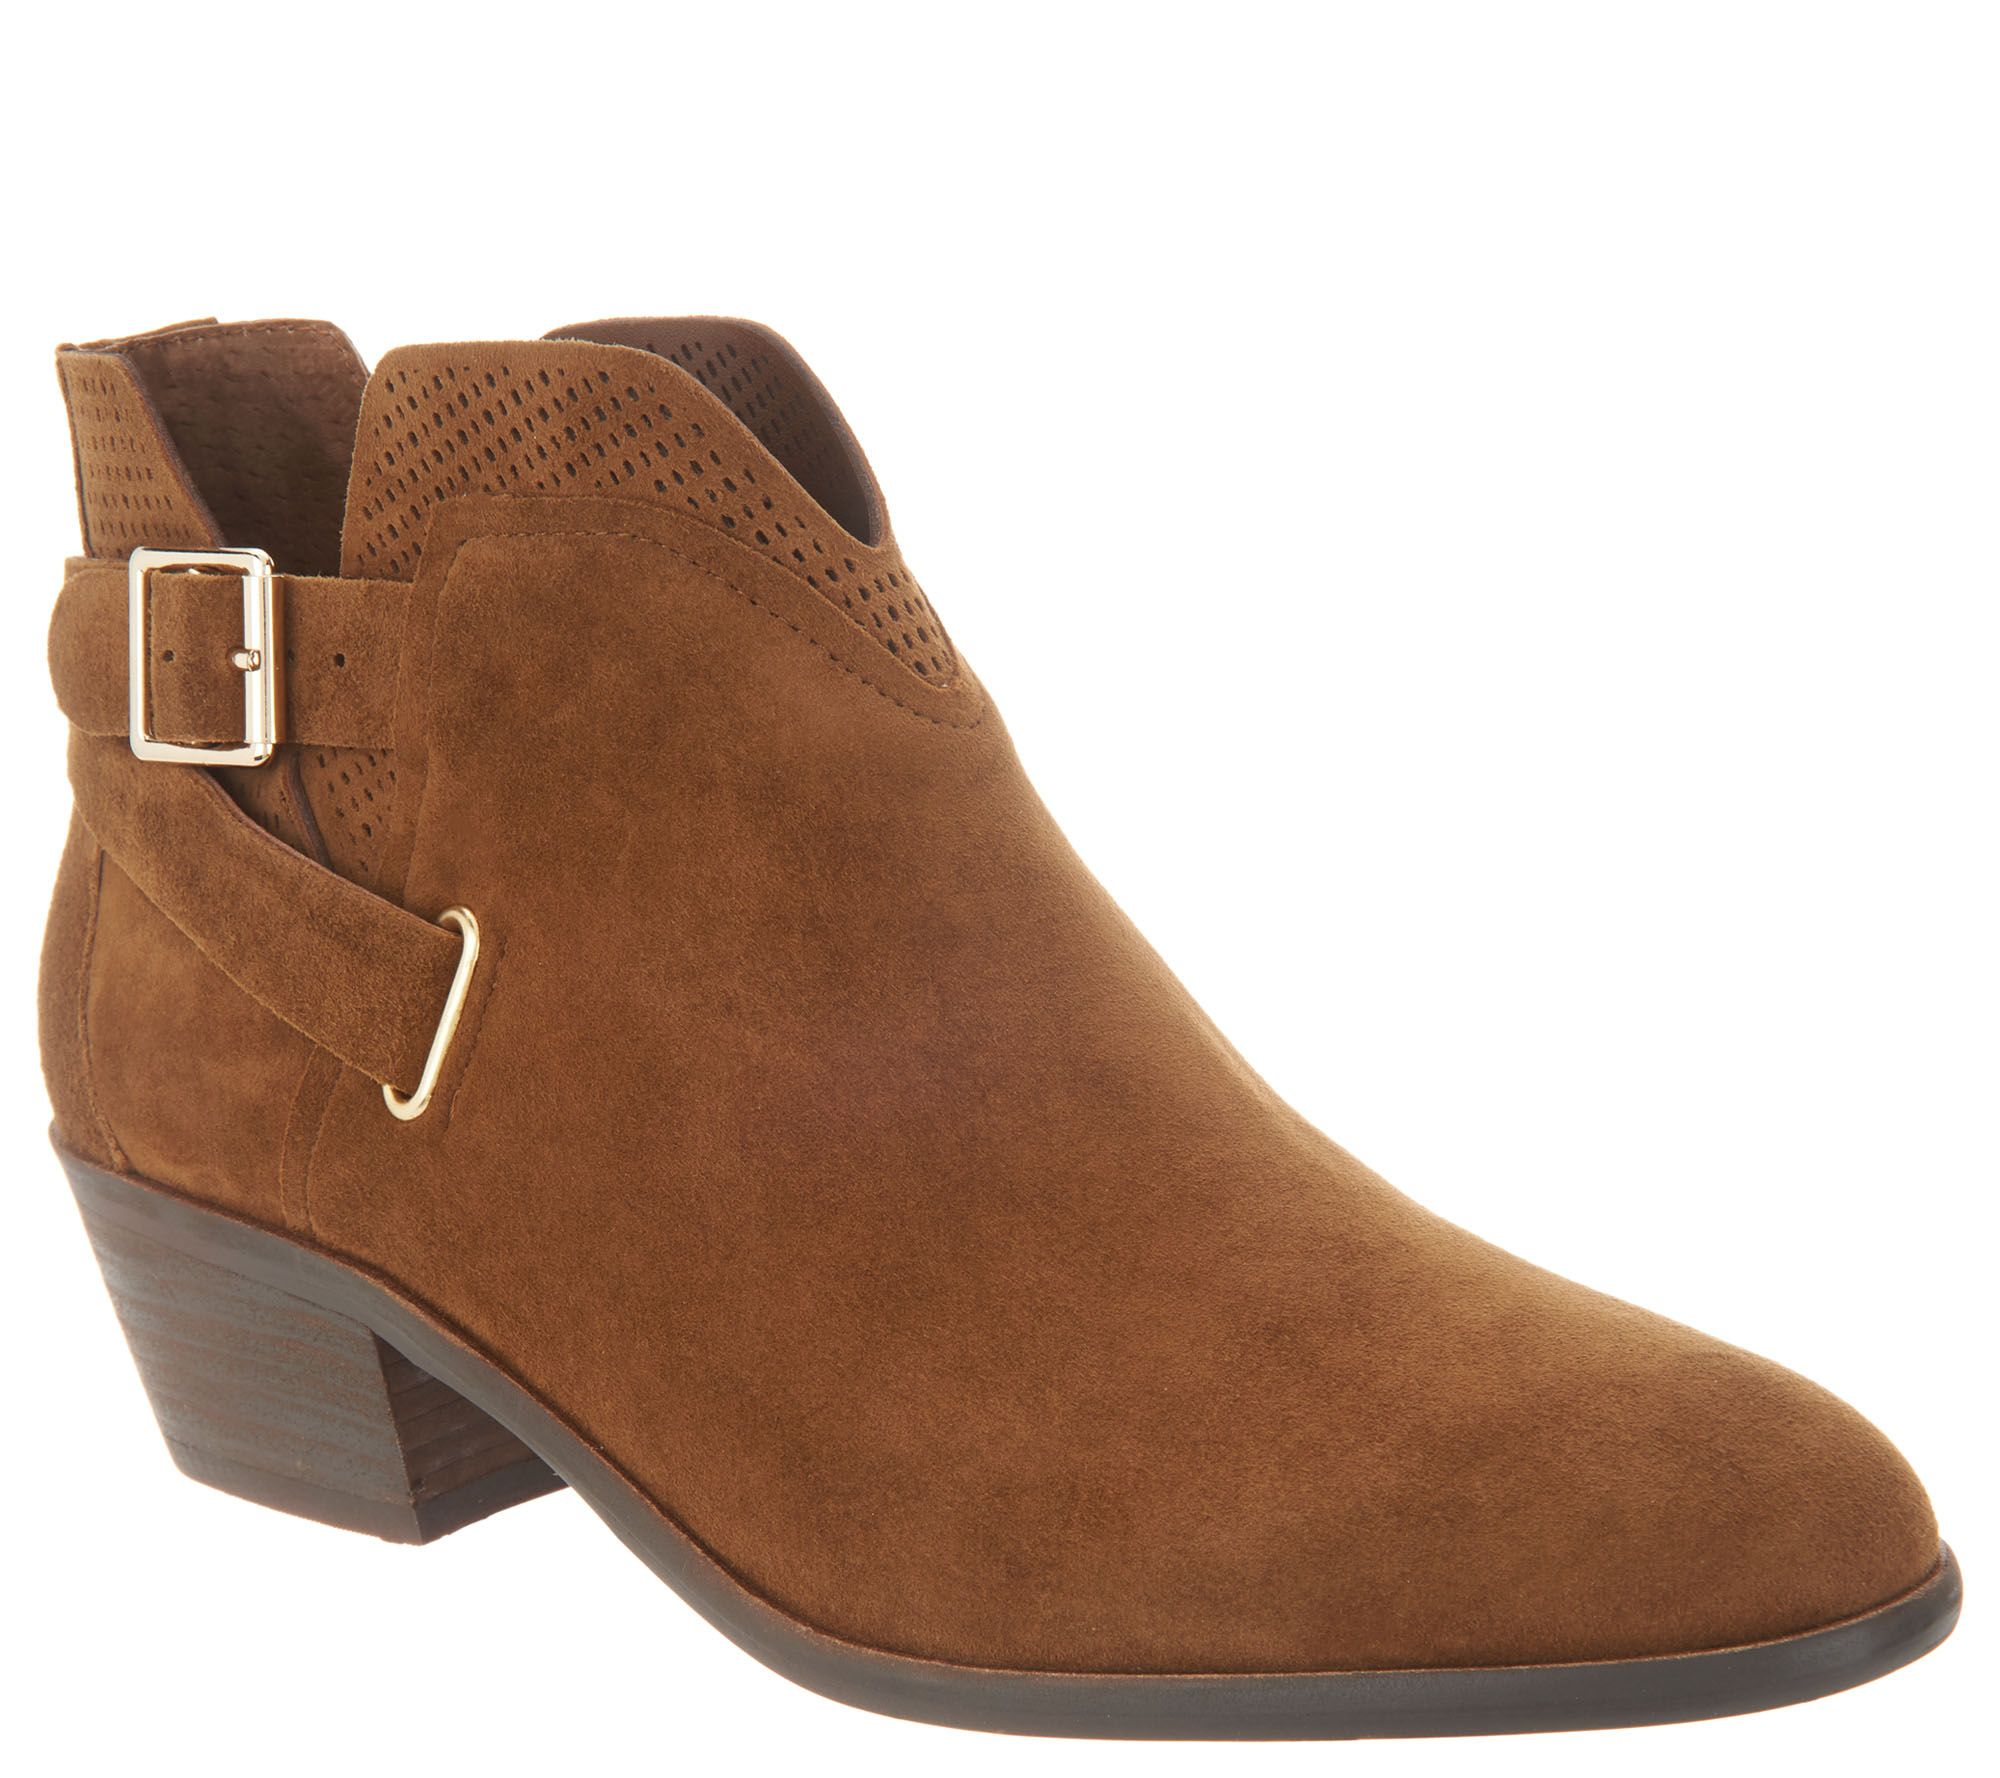 a3670eced8c Vince Camuto Suede Exposed Ankle Booties - Panthea — QVC.com